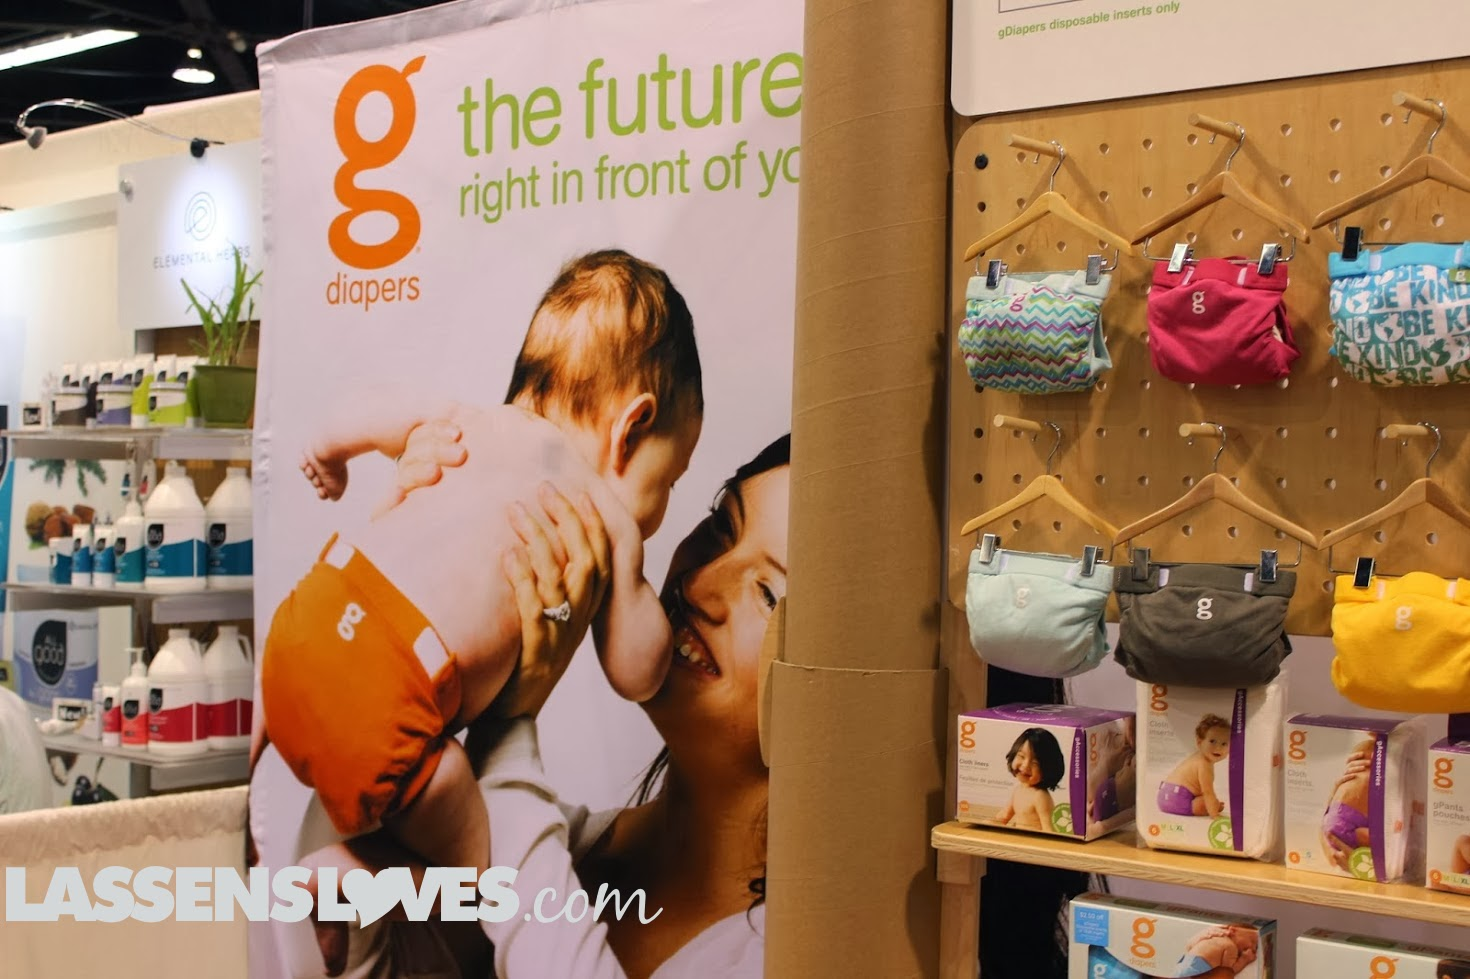 Natural+Foods+Expo+West+2014, Natural+Foods, Expo+West, G+diapers